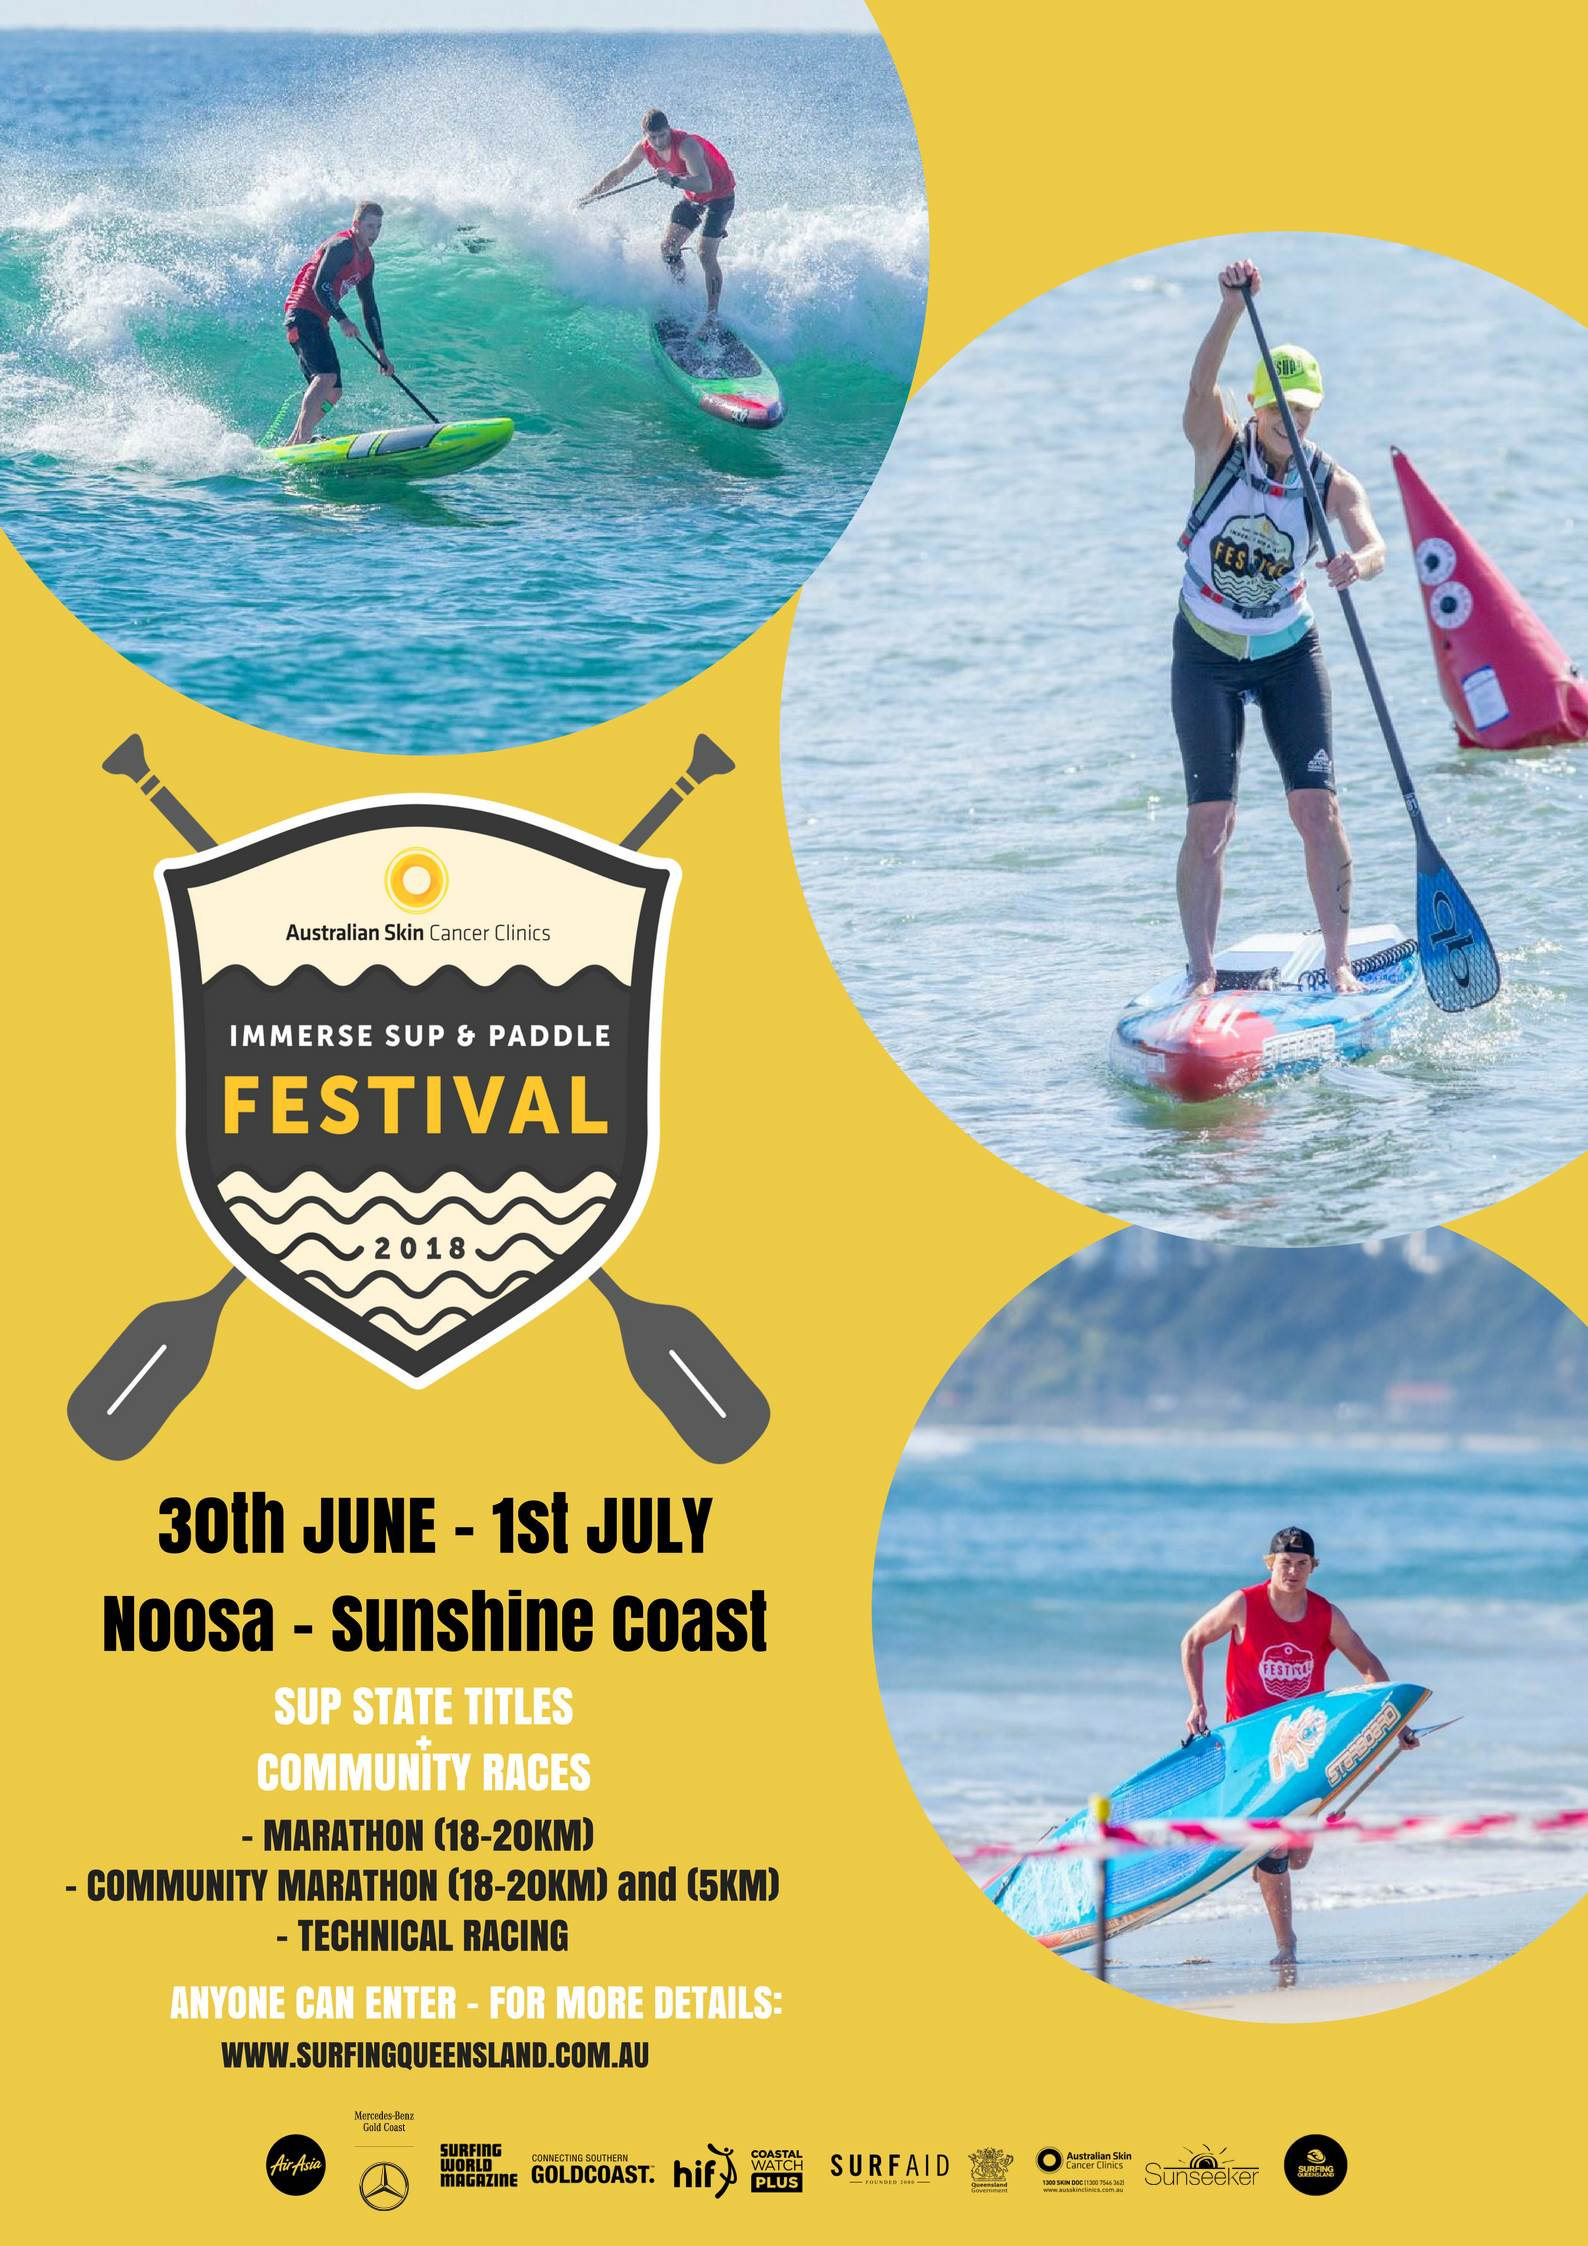 Stand Up Paddle Immerse Sup And Paddle Festival in Sunshine Coast